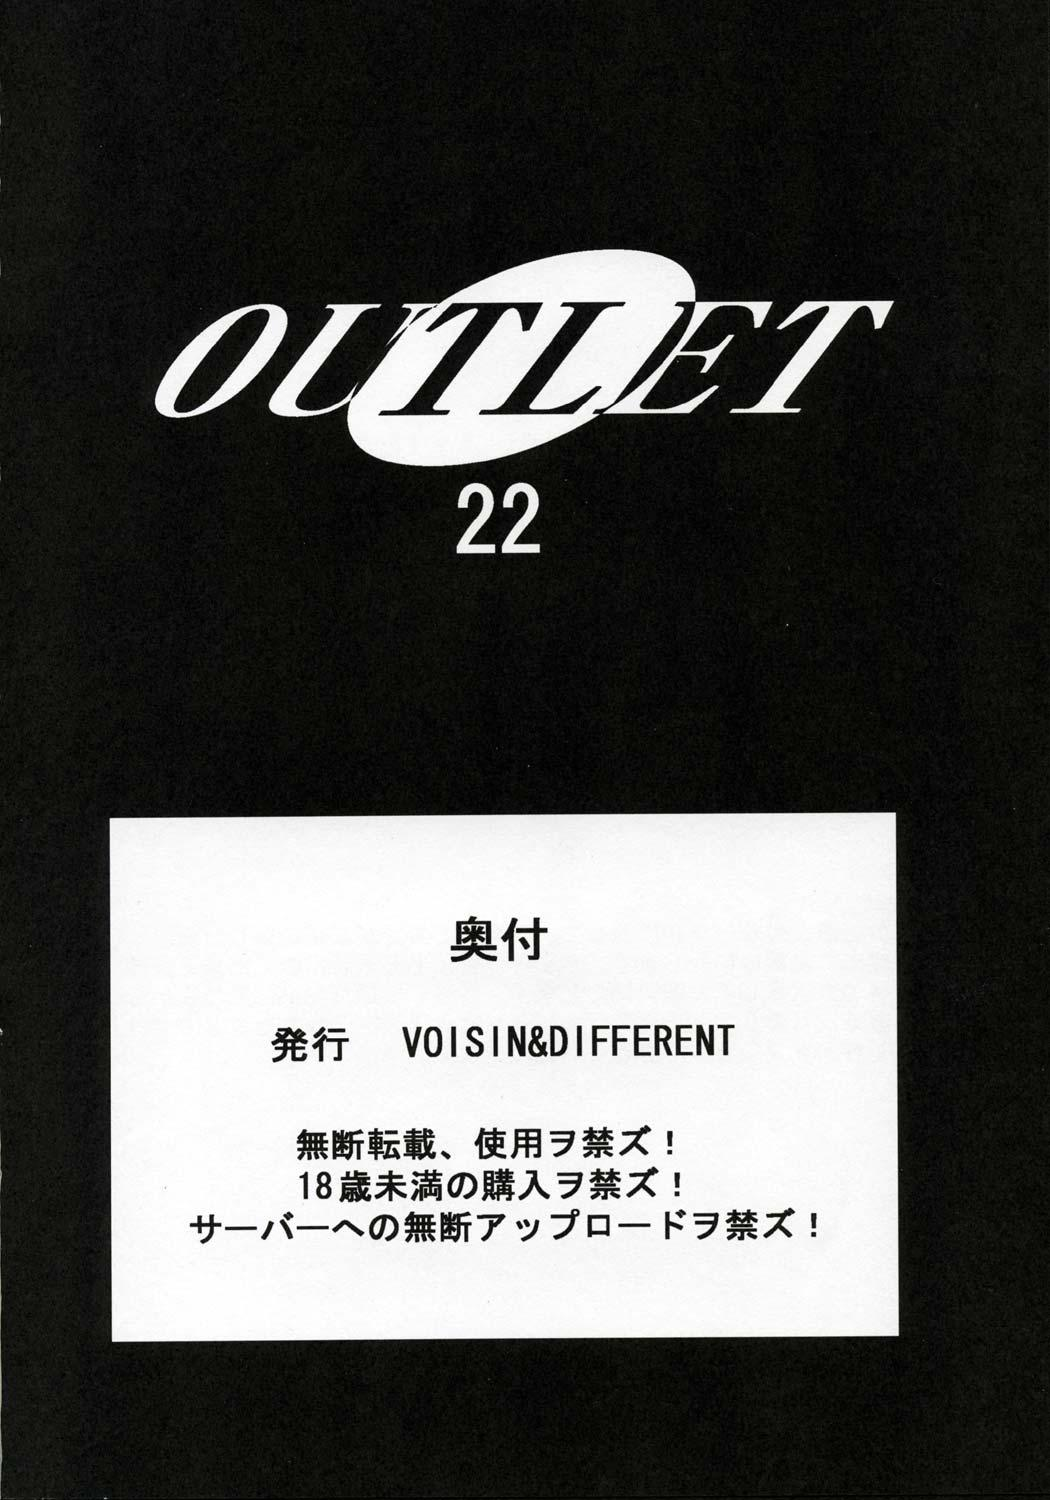 OUTLET 22 48